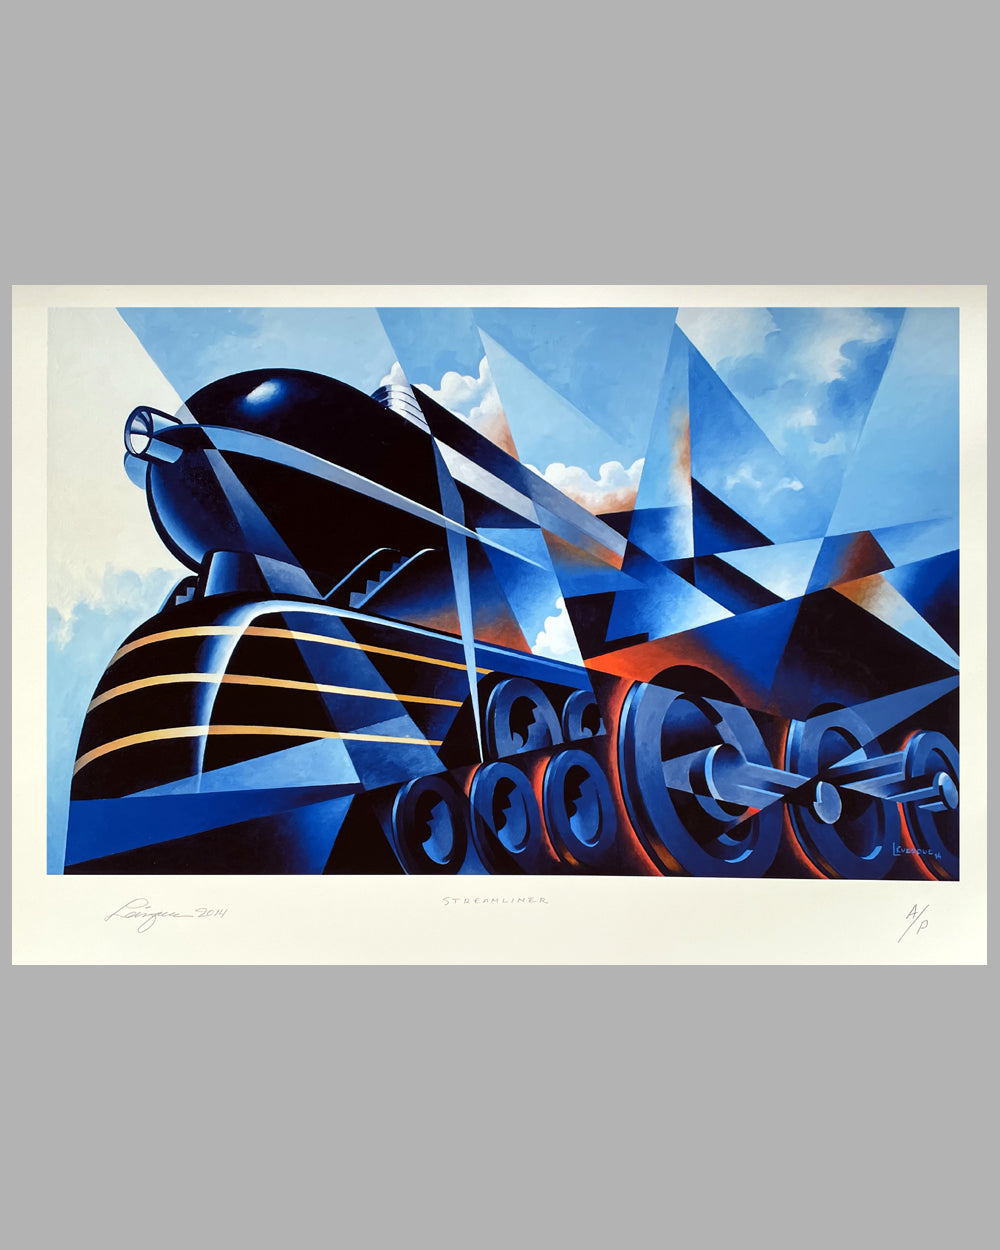 Steam Streamliner duplex giclée on paper by Alain Levesque, 2014